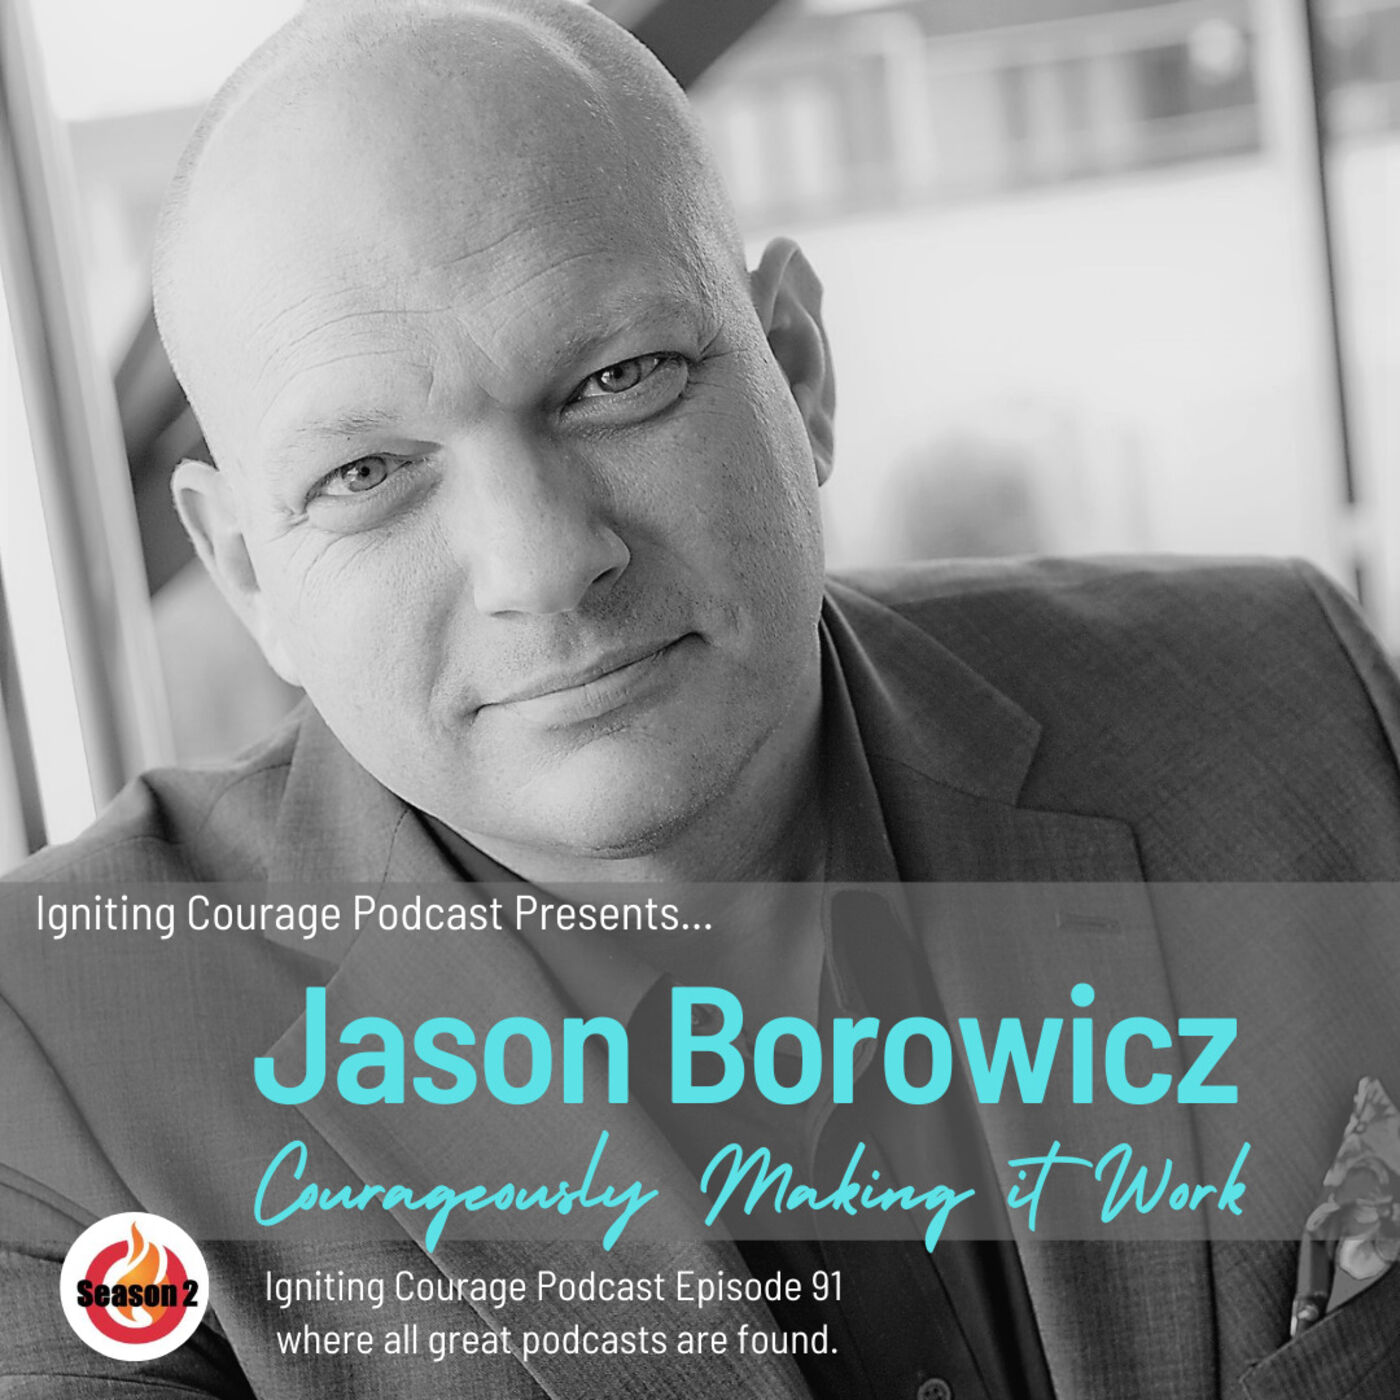 IGNITING COURAGE Podcast Episode 91: Jason Borowicz, Courageously Making it Work